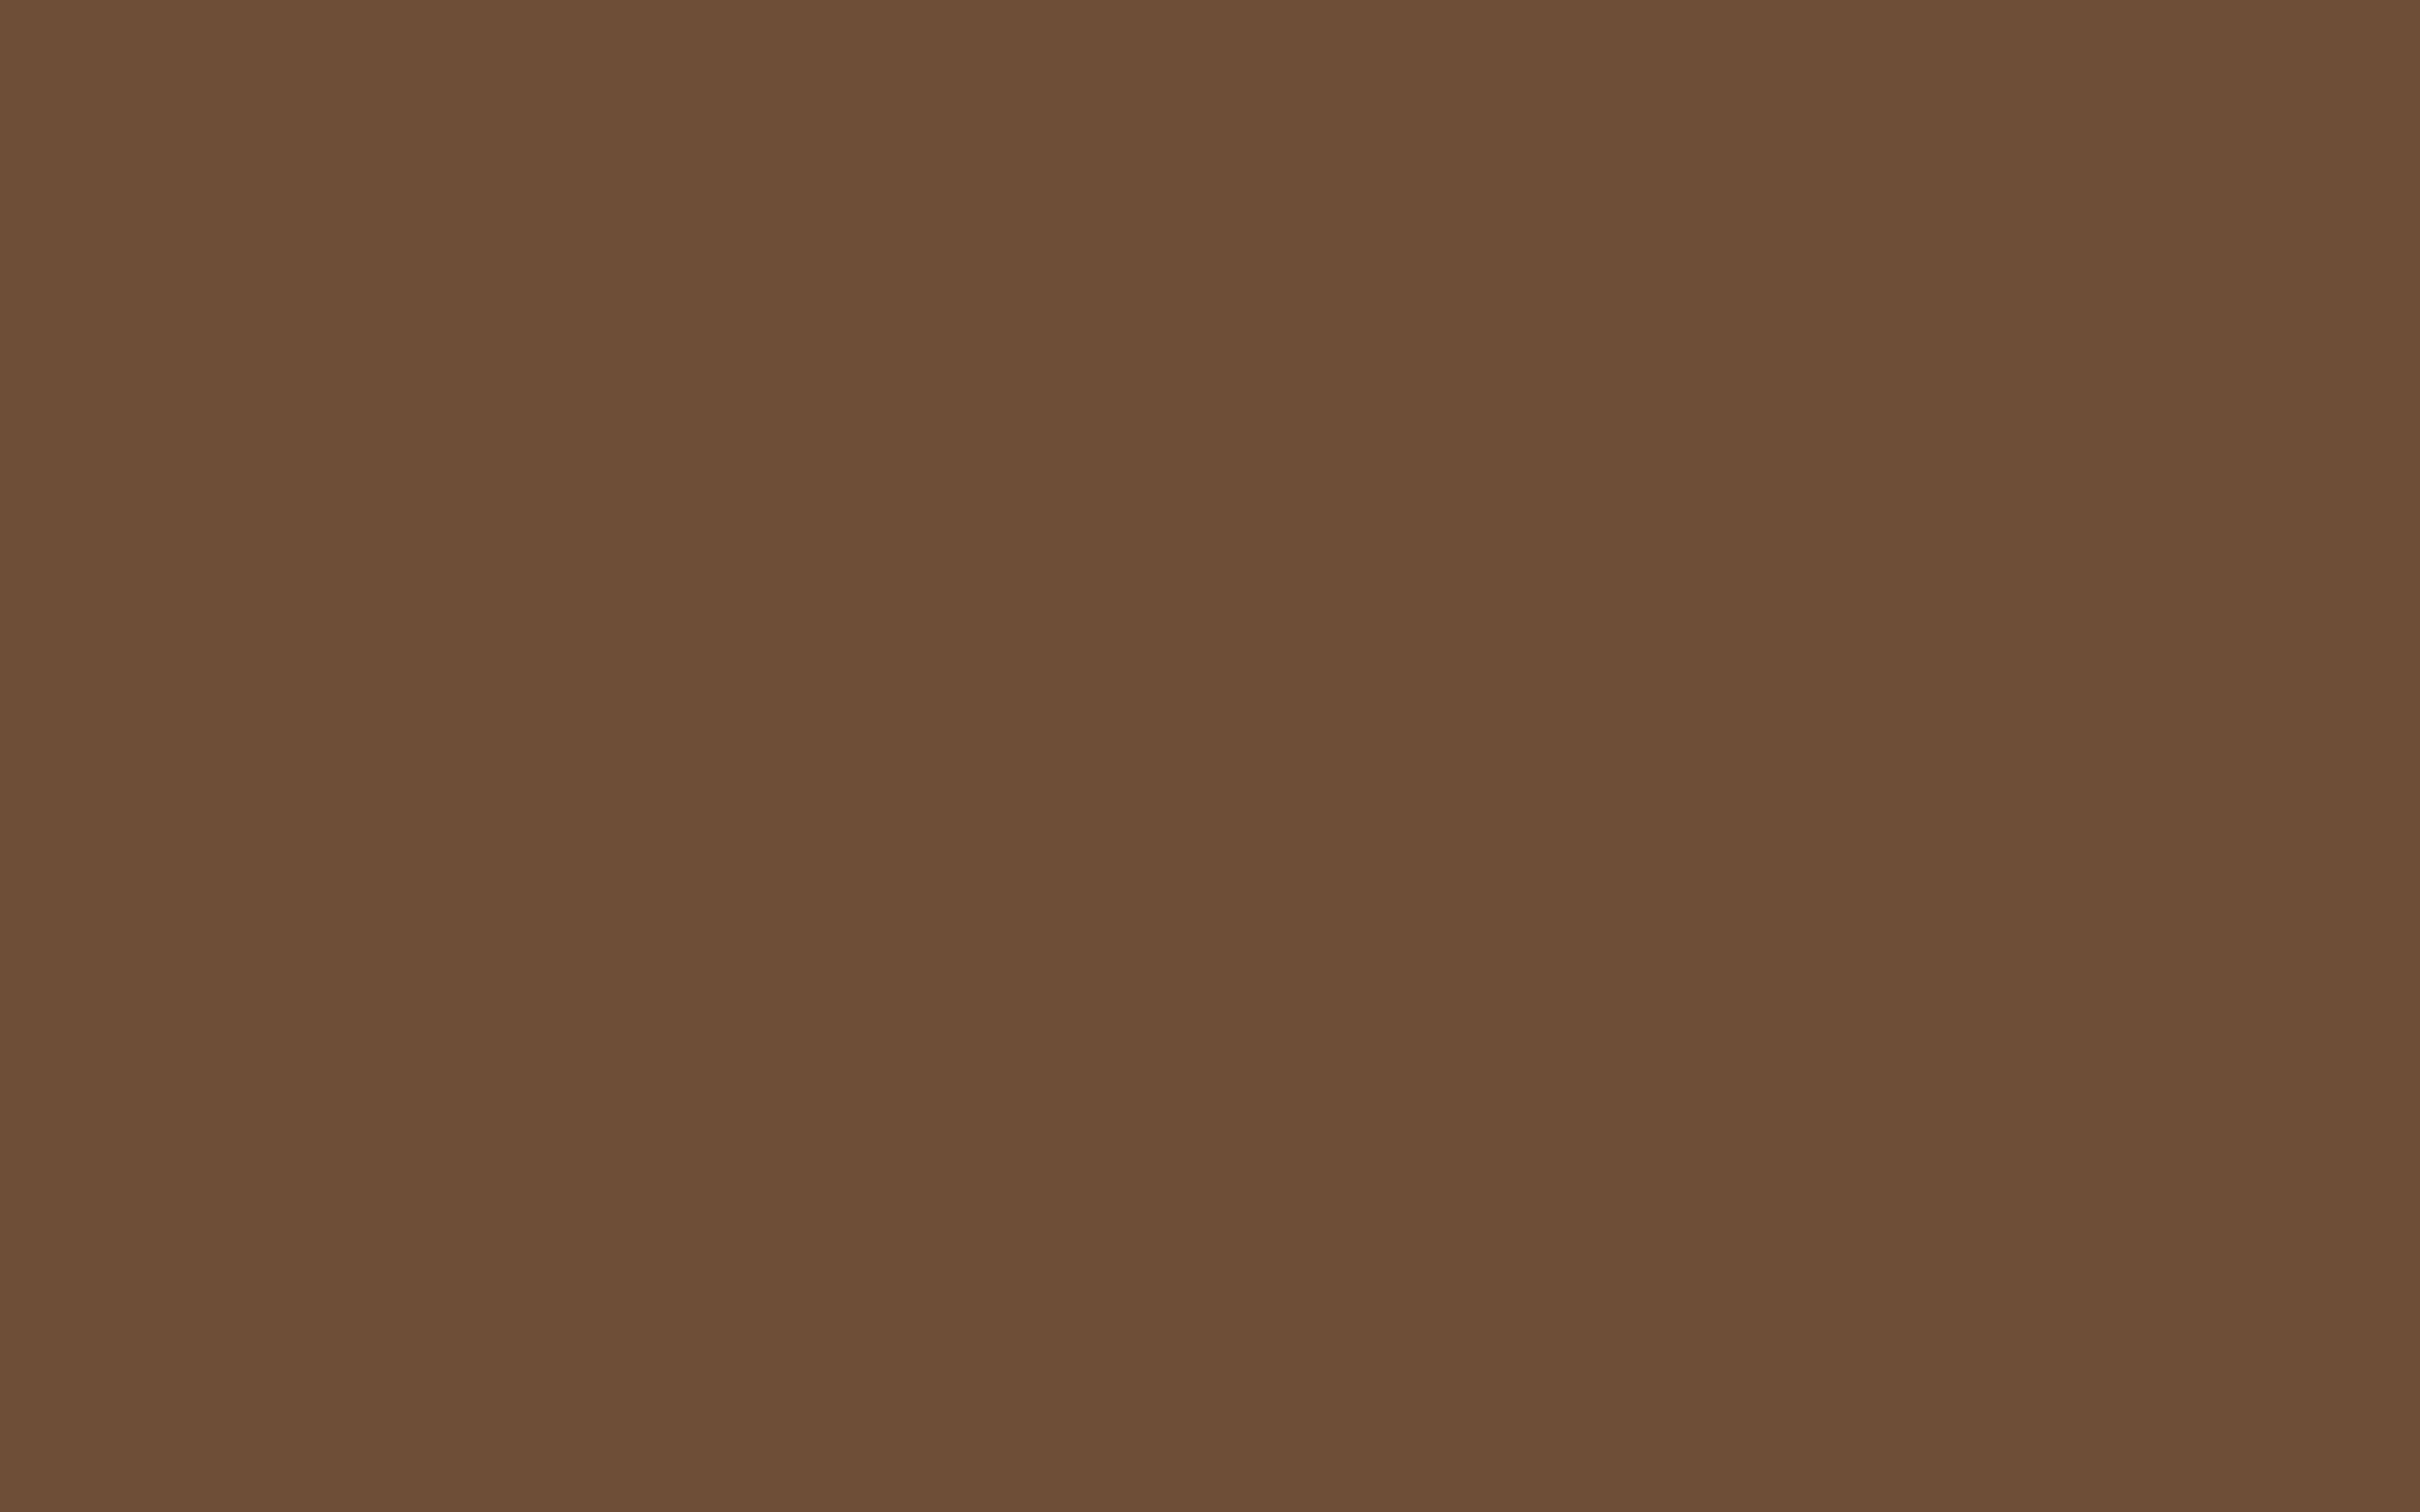 2560x1600 Tuscan Brown Solid Color Background